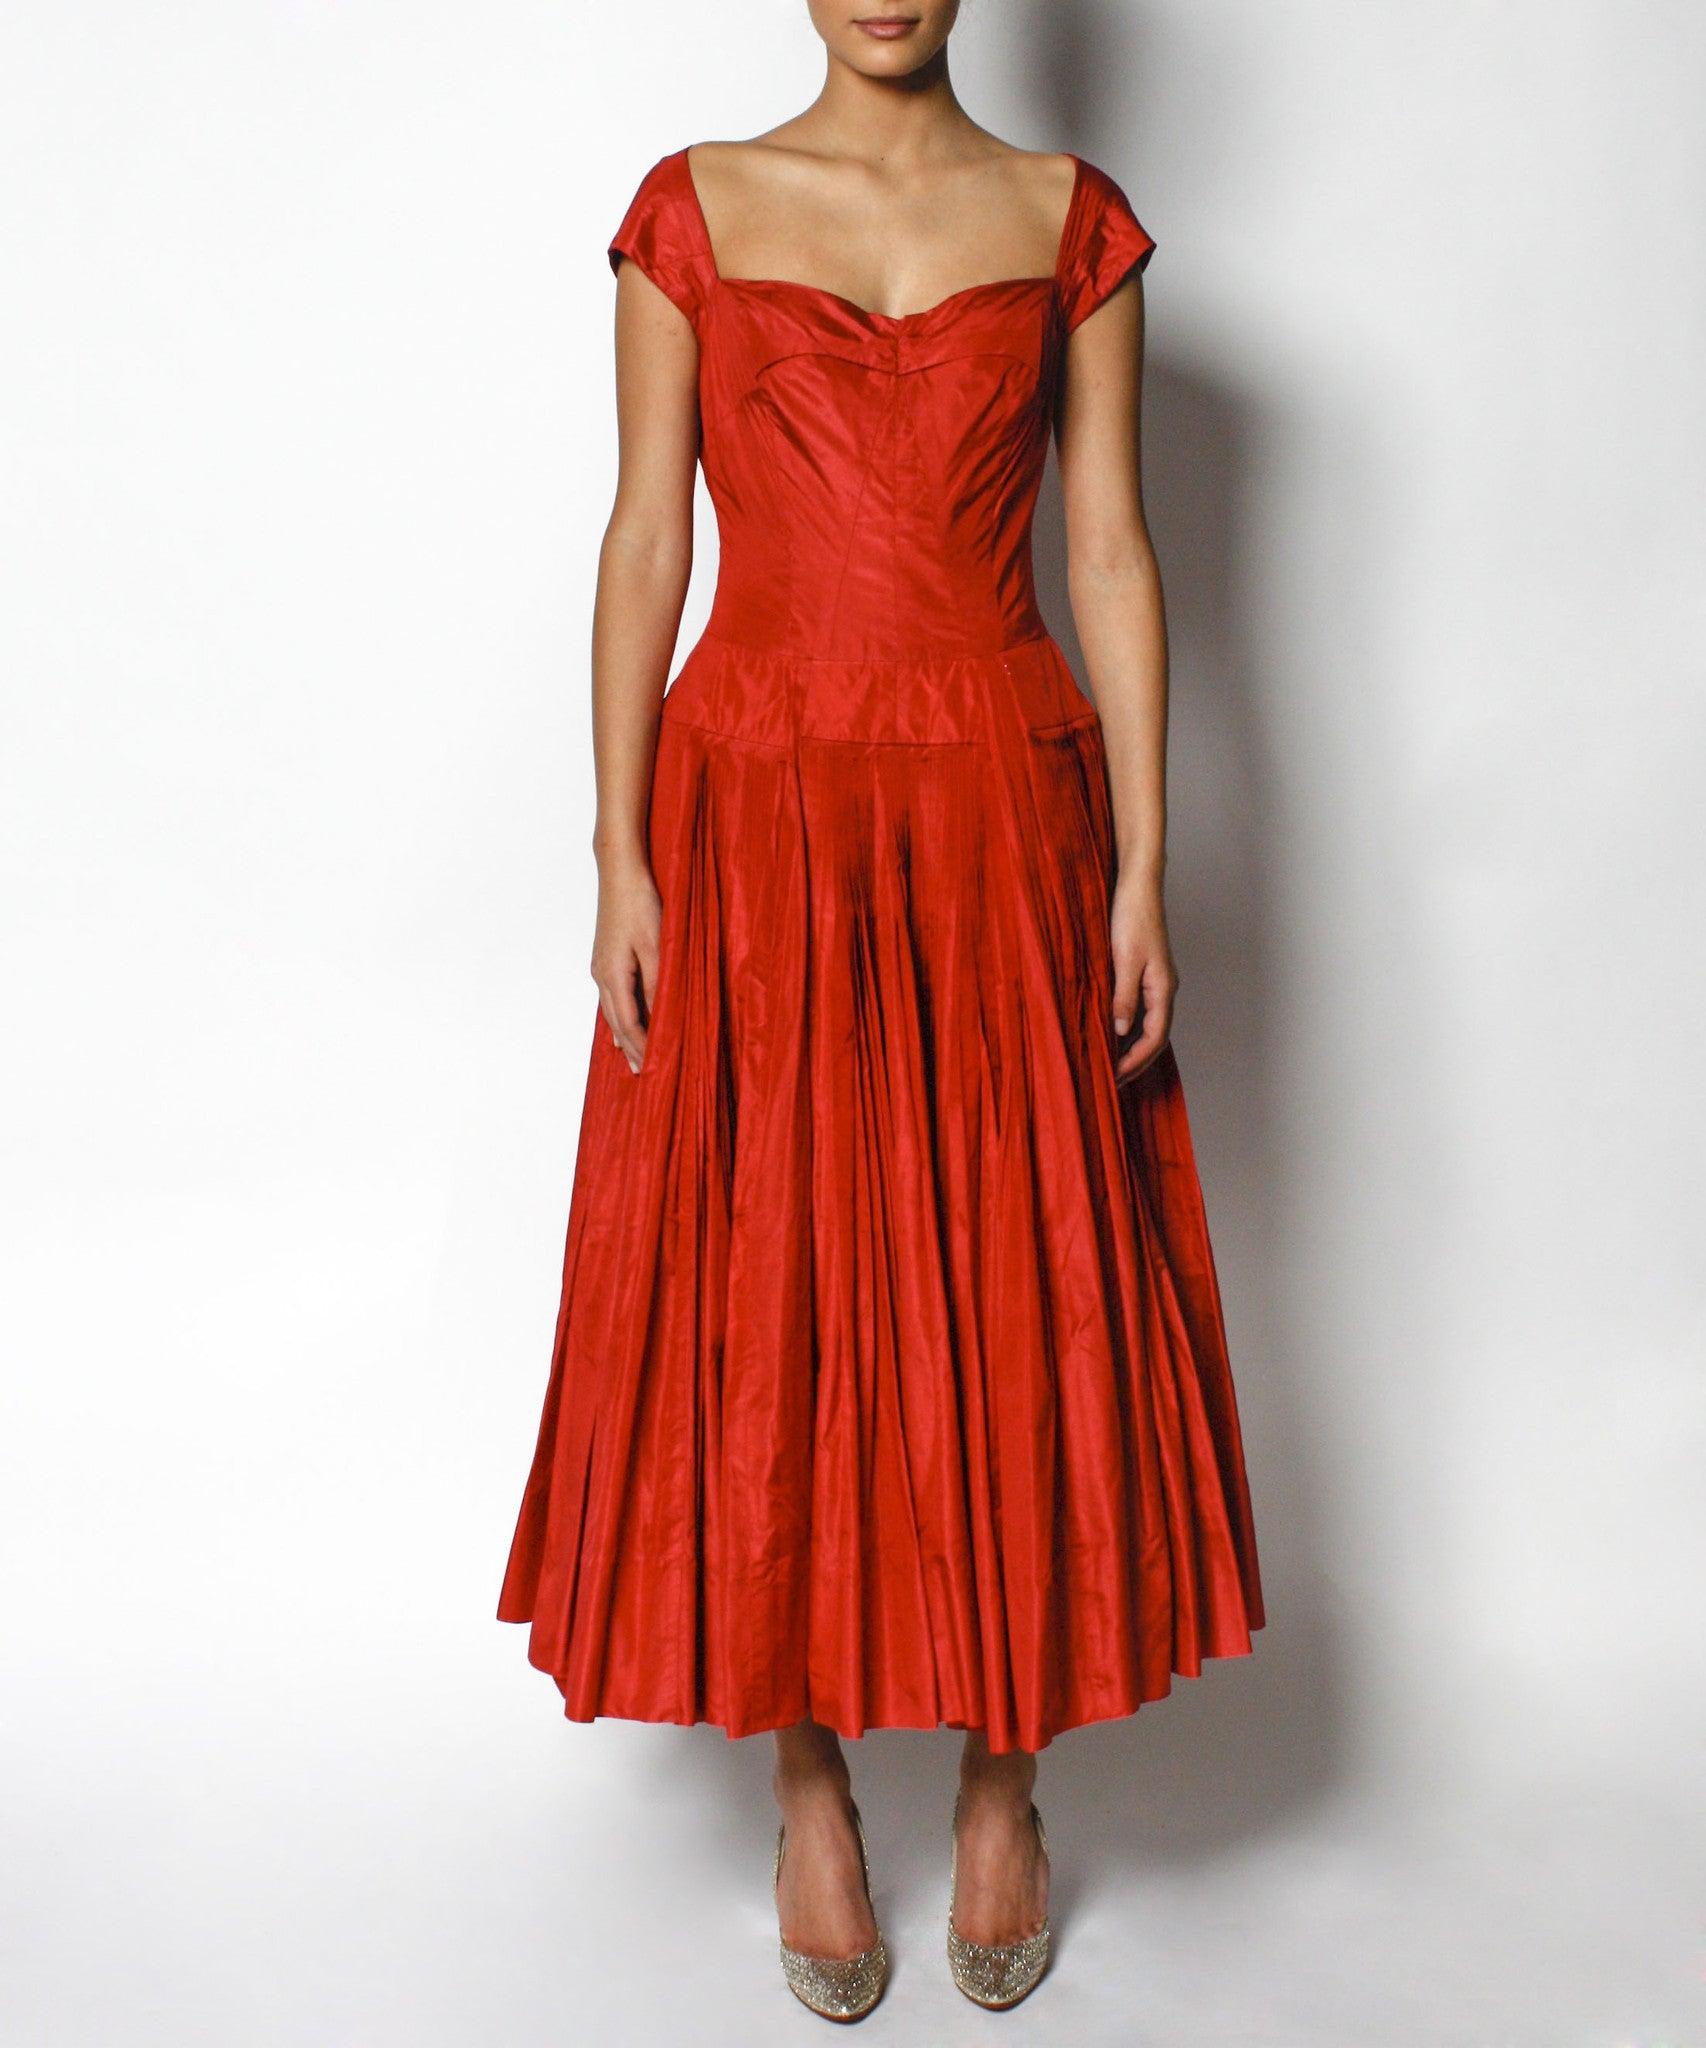 Galanos 1950s Red Silk Satin Dress